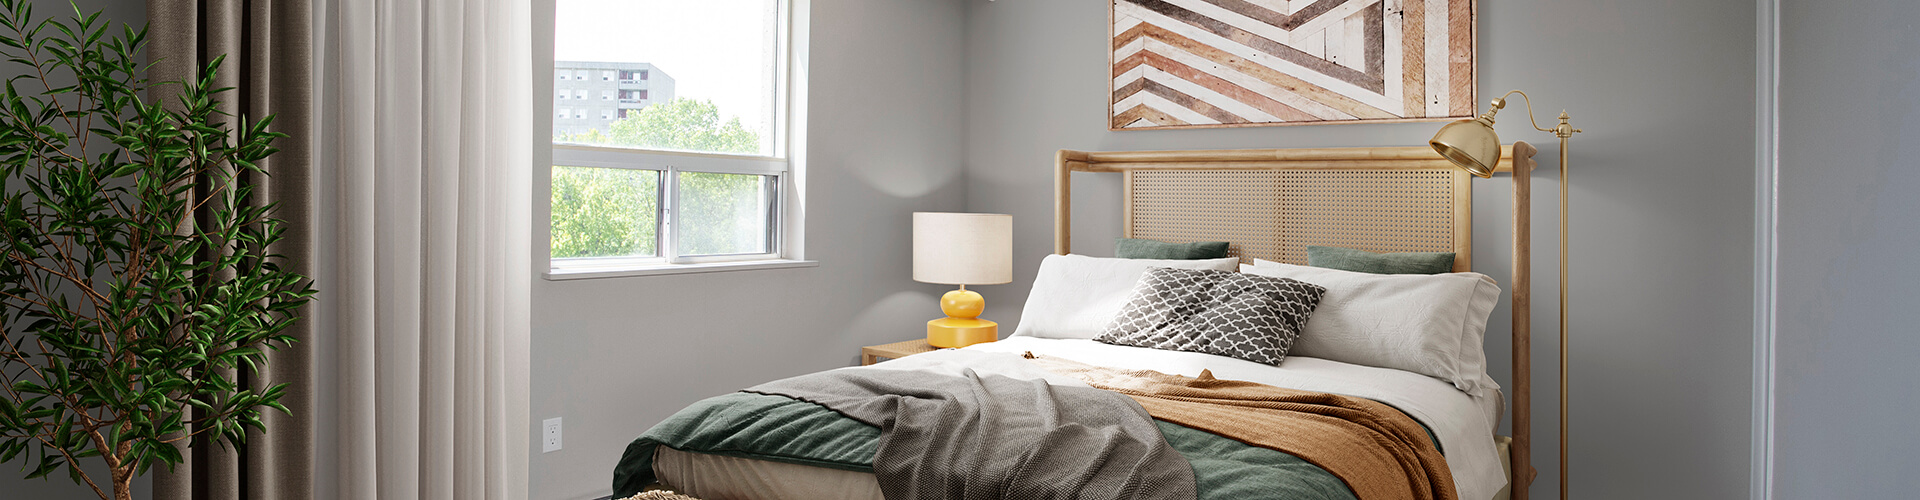 Cozy bedroom Proudfoot Lane Apartments in London. Rent with Minto Apartments.